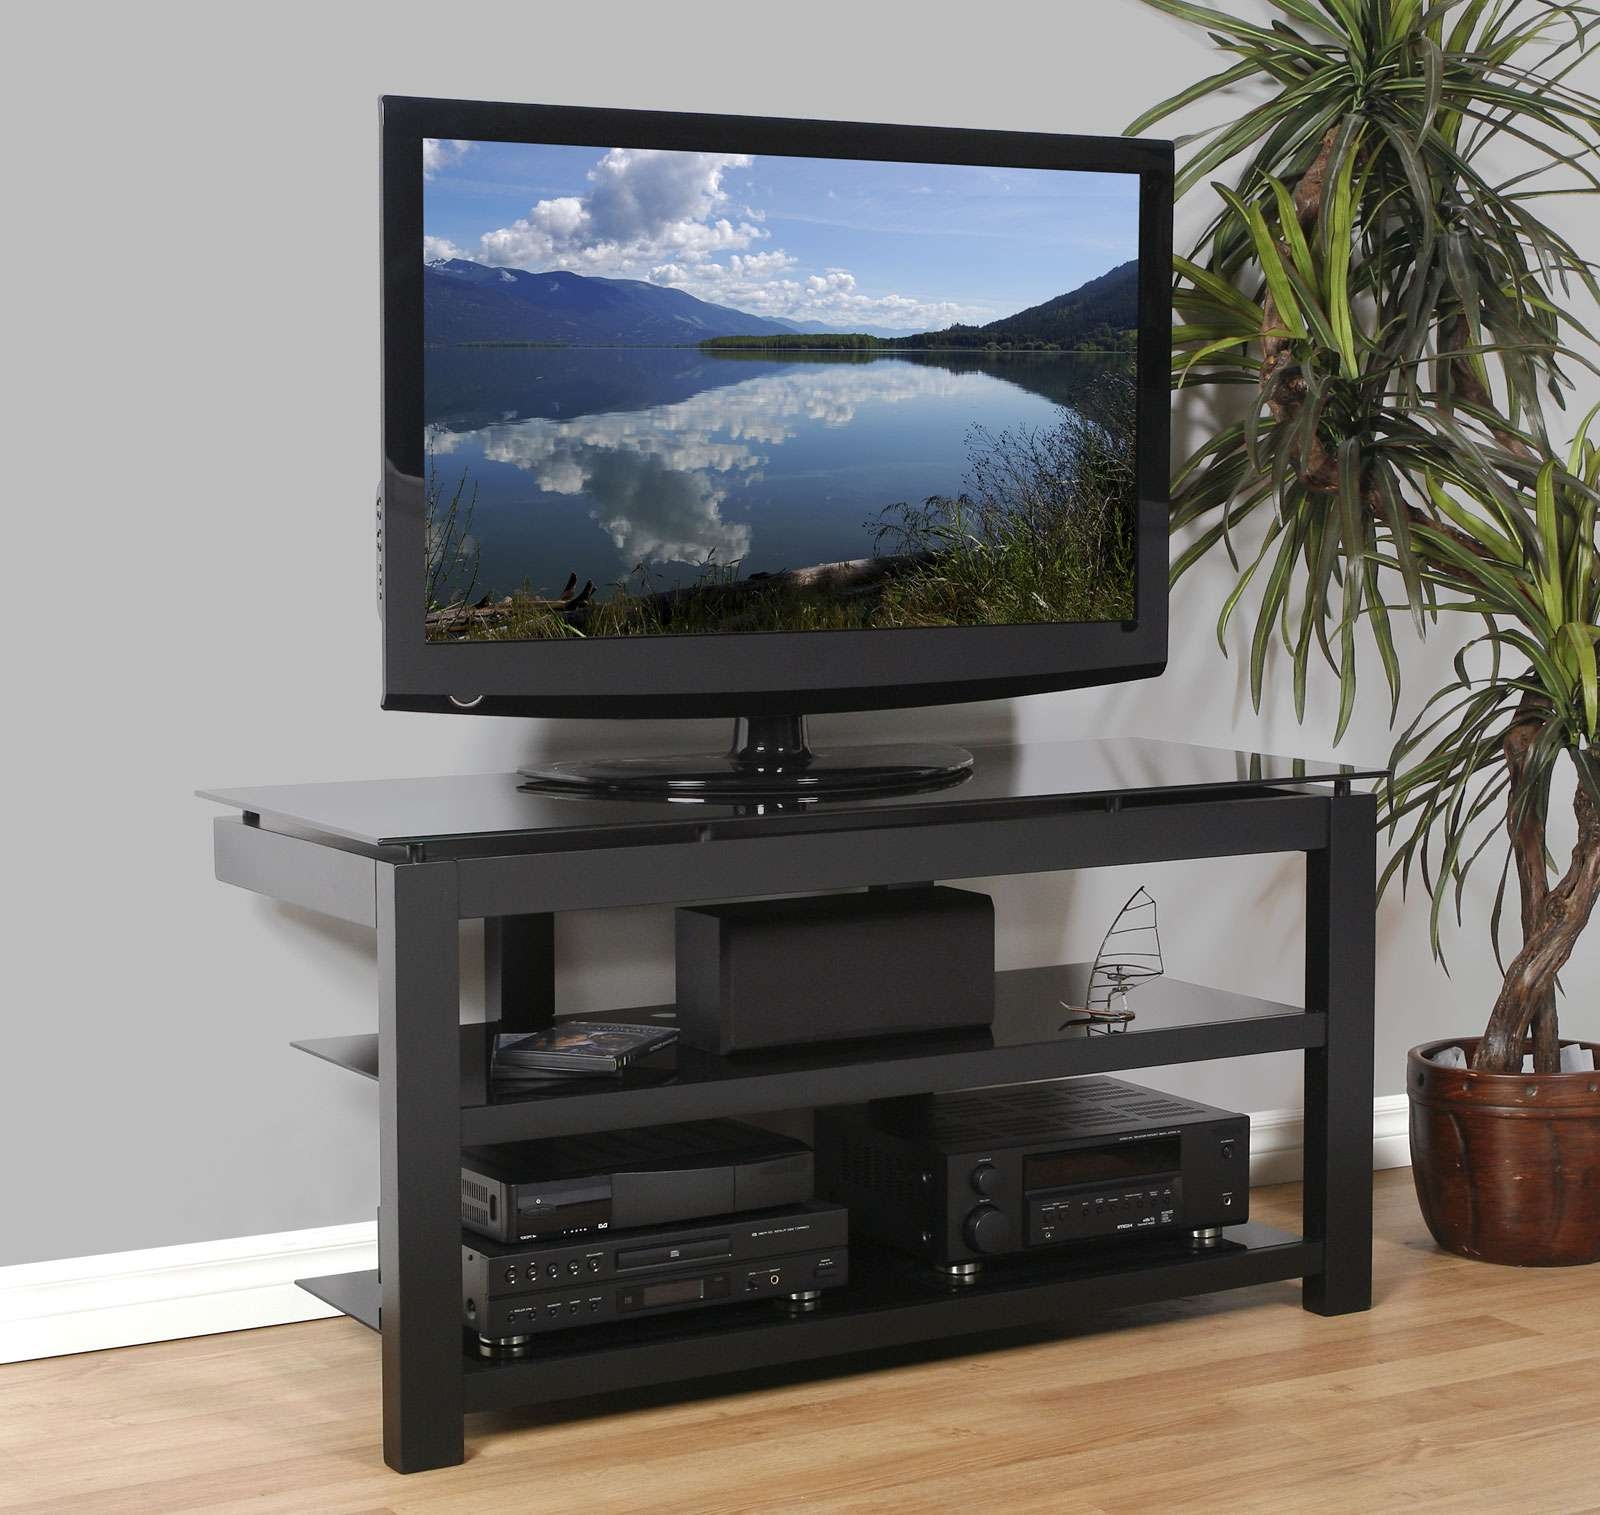 50 Inch Flat Screen Tv Stand – Natural Wood Veneers And Black In Wood Tv Stands With Glass (View 3 of 15)